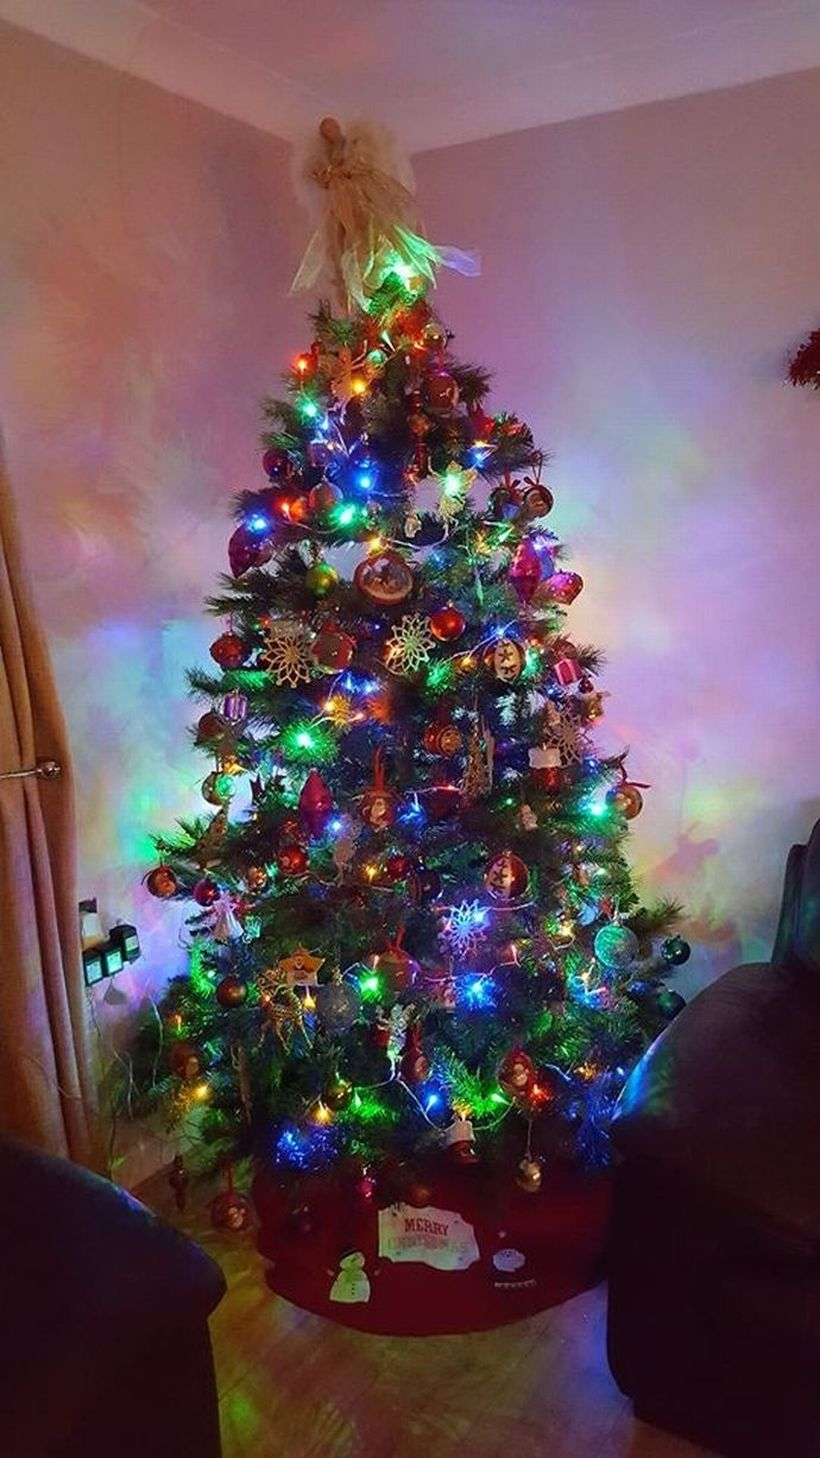 Chrismast tree combine with colorful ornament decoration